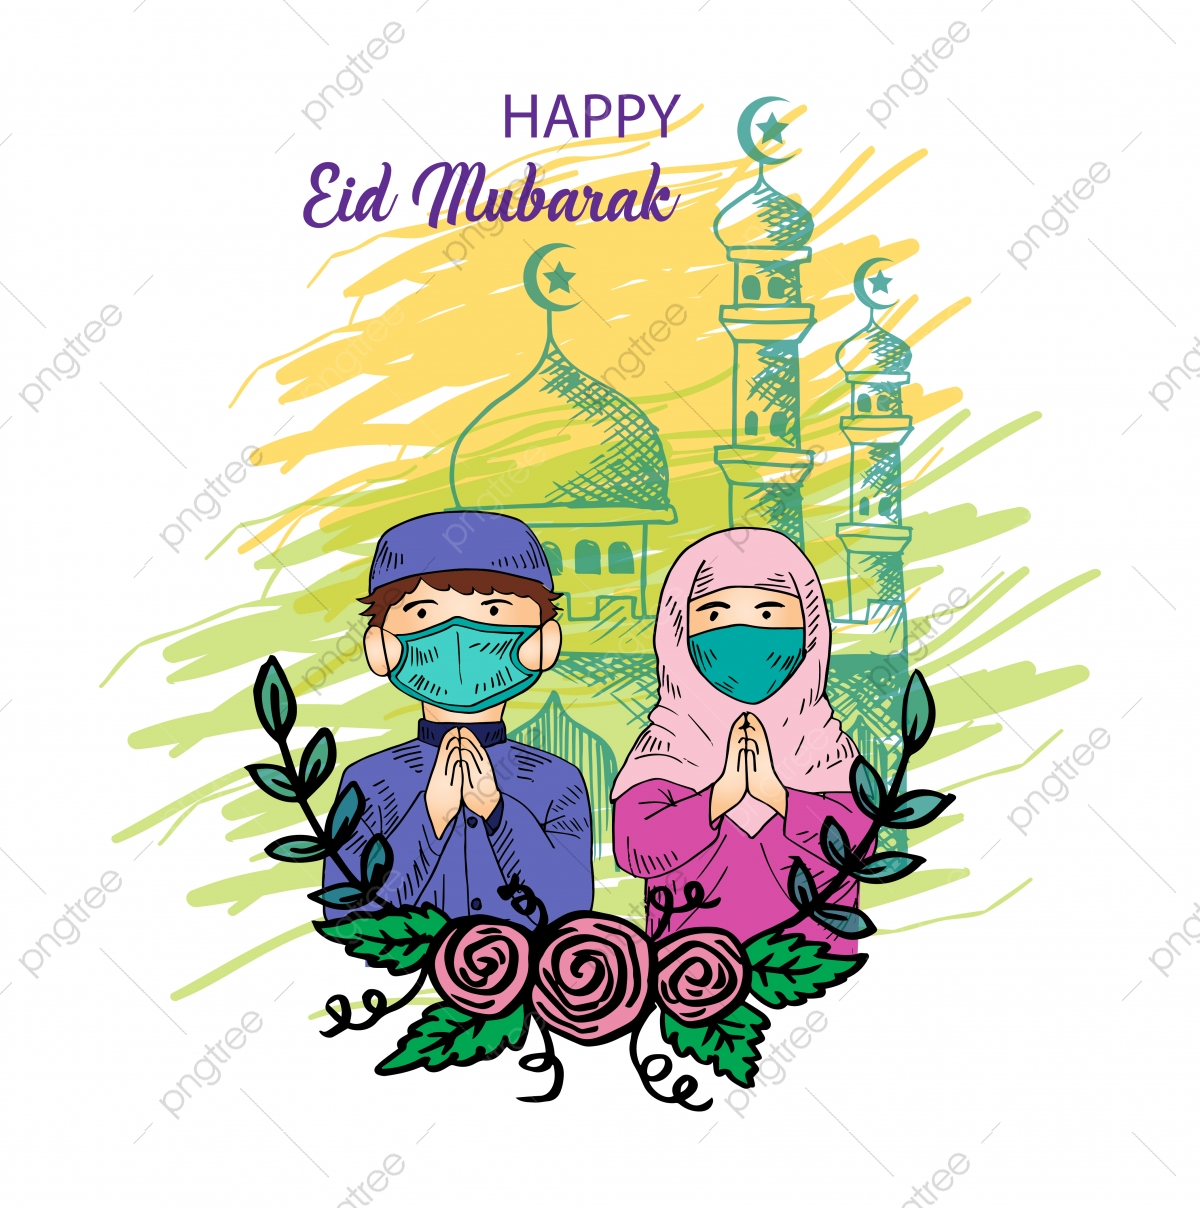 Happy Eid Mubarak Png Images Vector And Psd Files Free